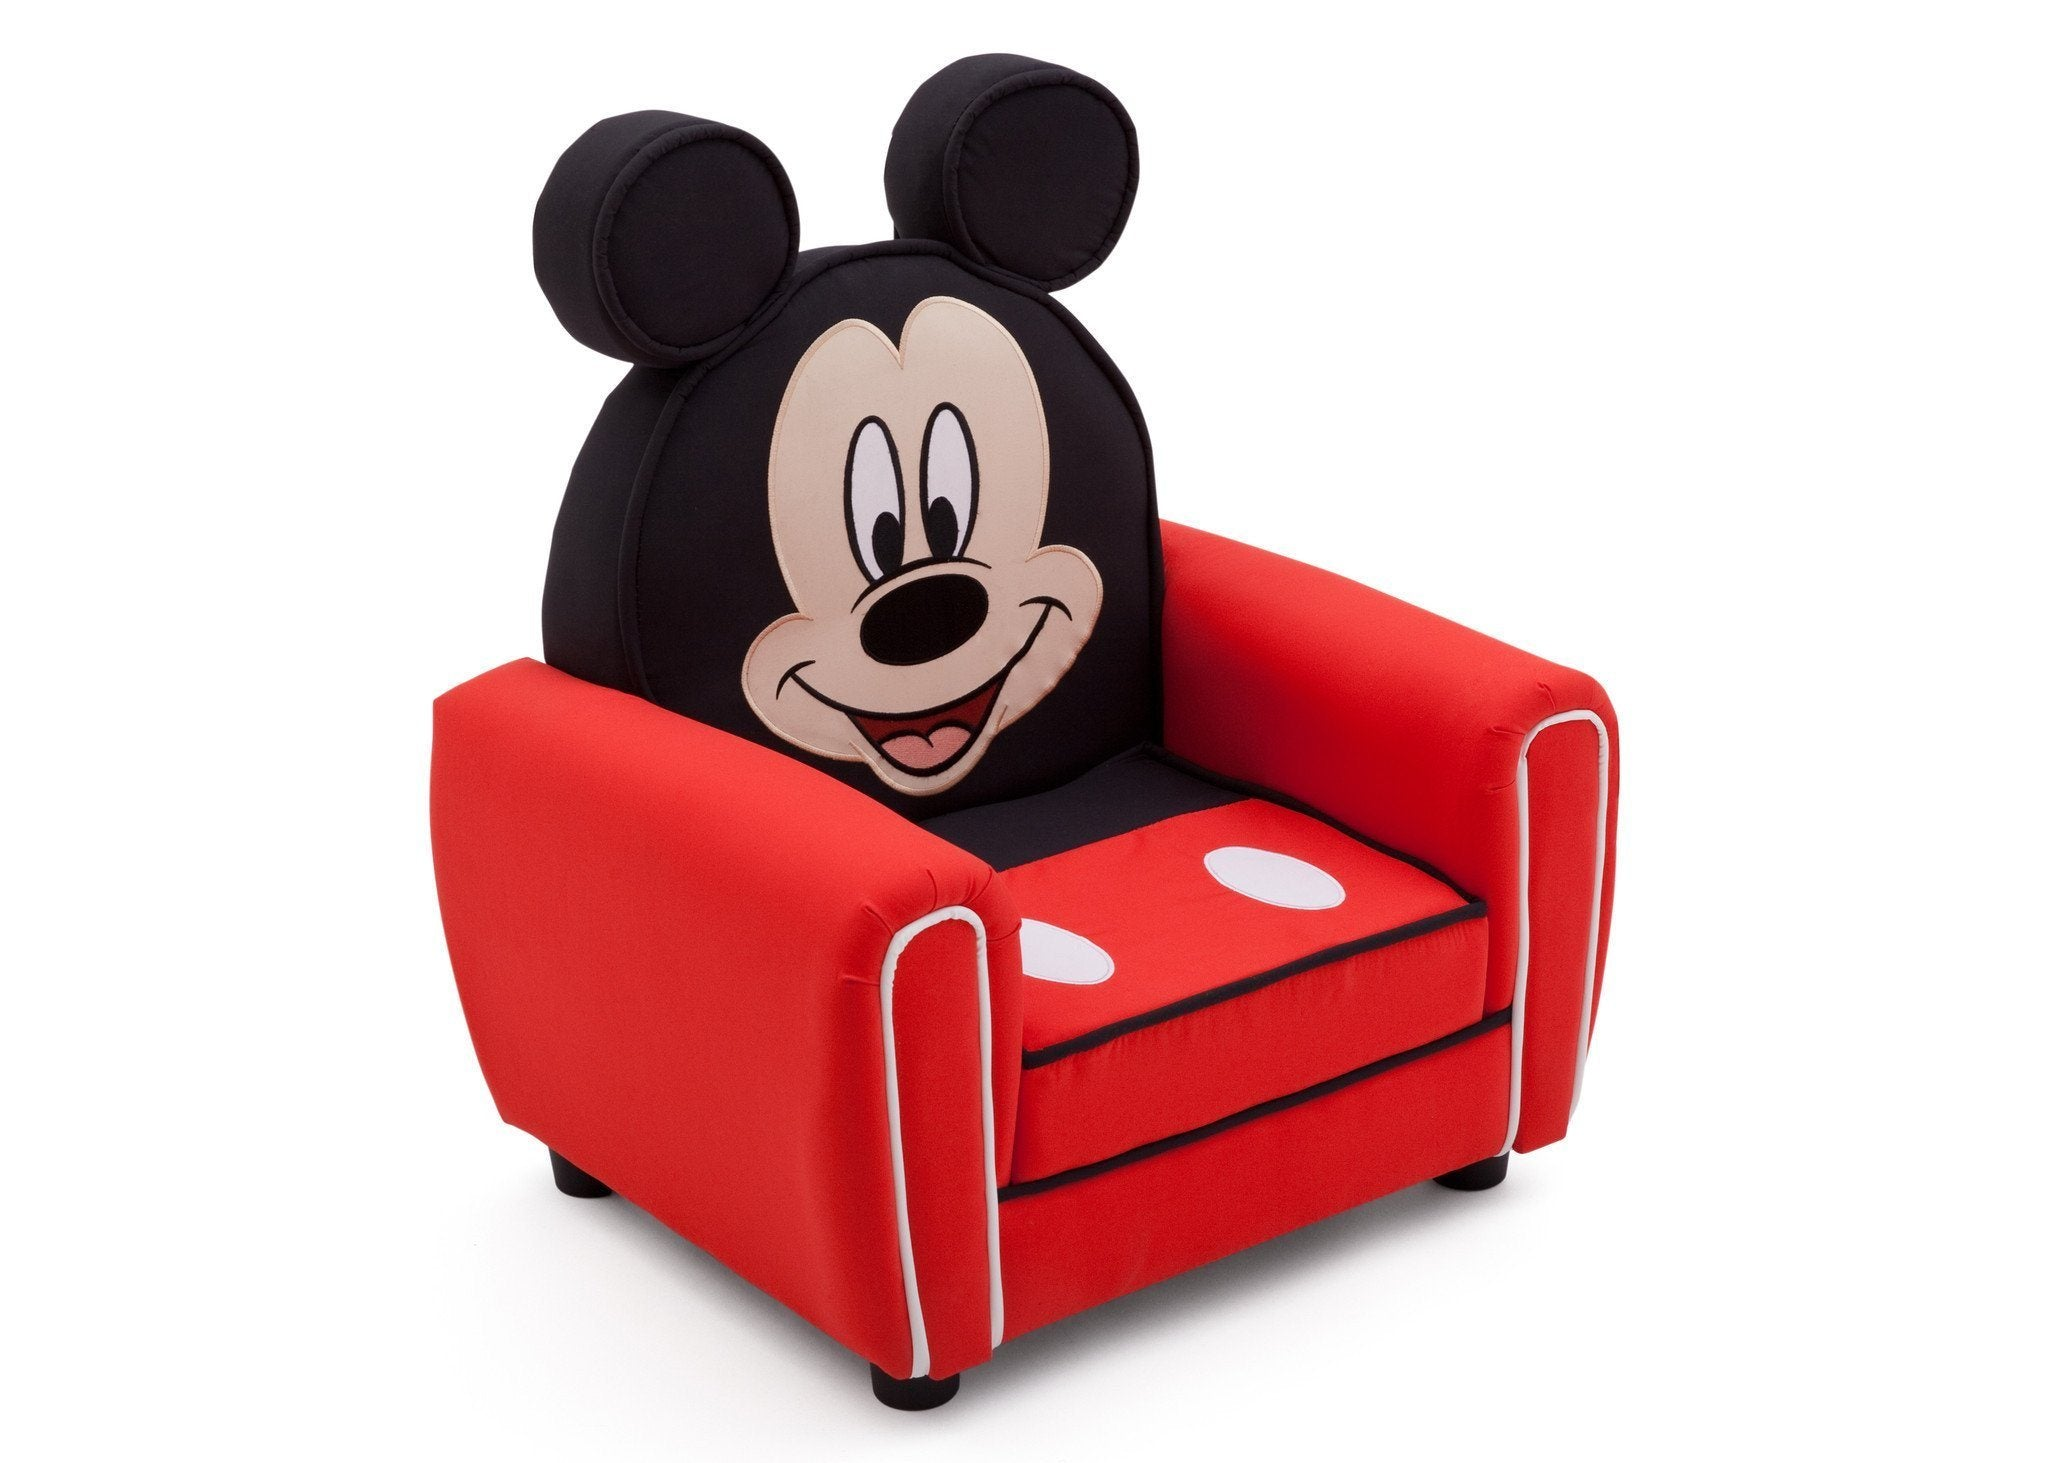 Delta Children Mickey Figural Upholstered Chair Right Side View a1a